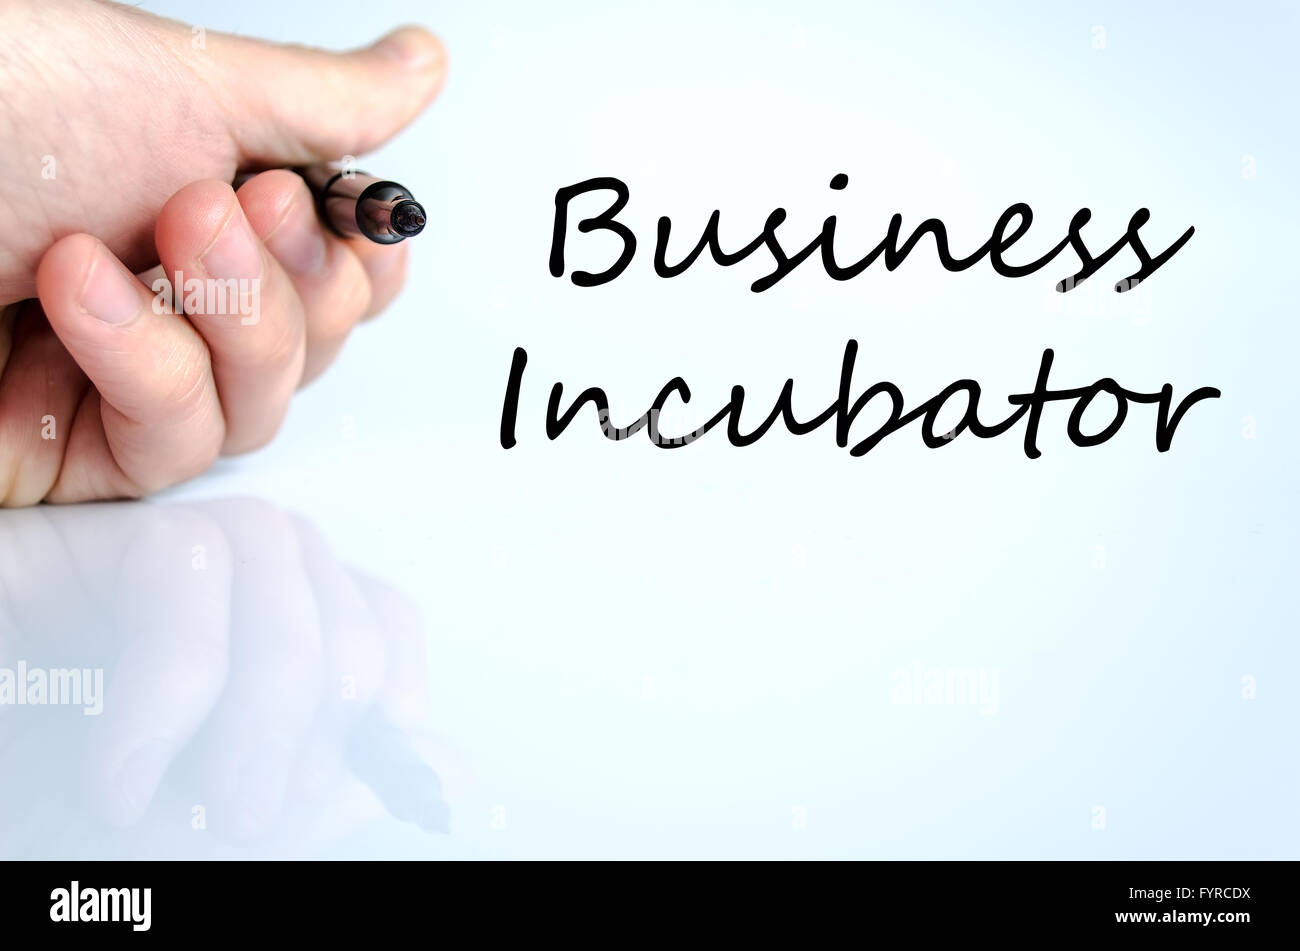 Business incubator text concept - Stock Image